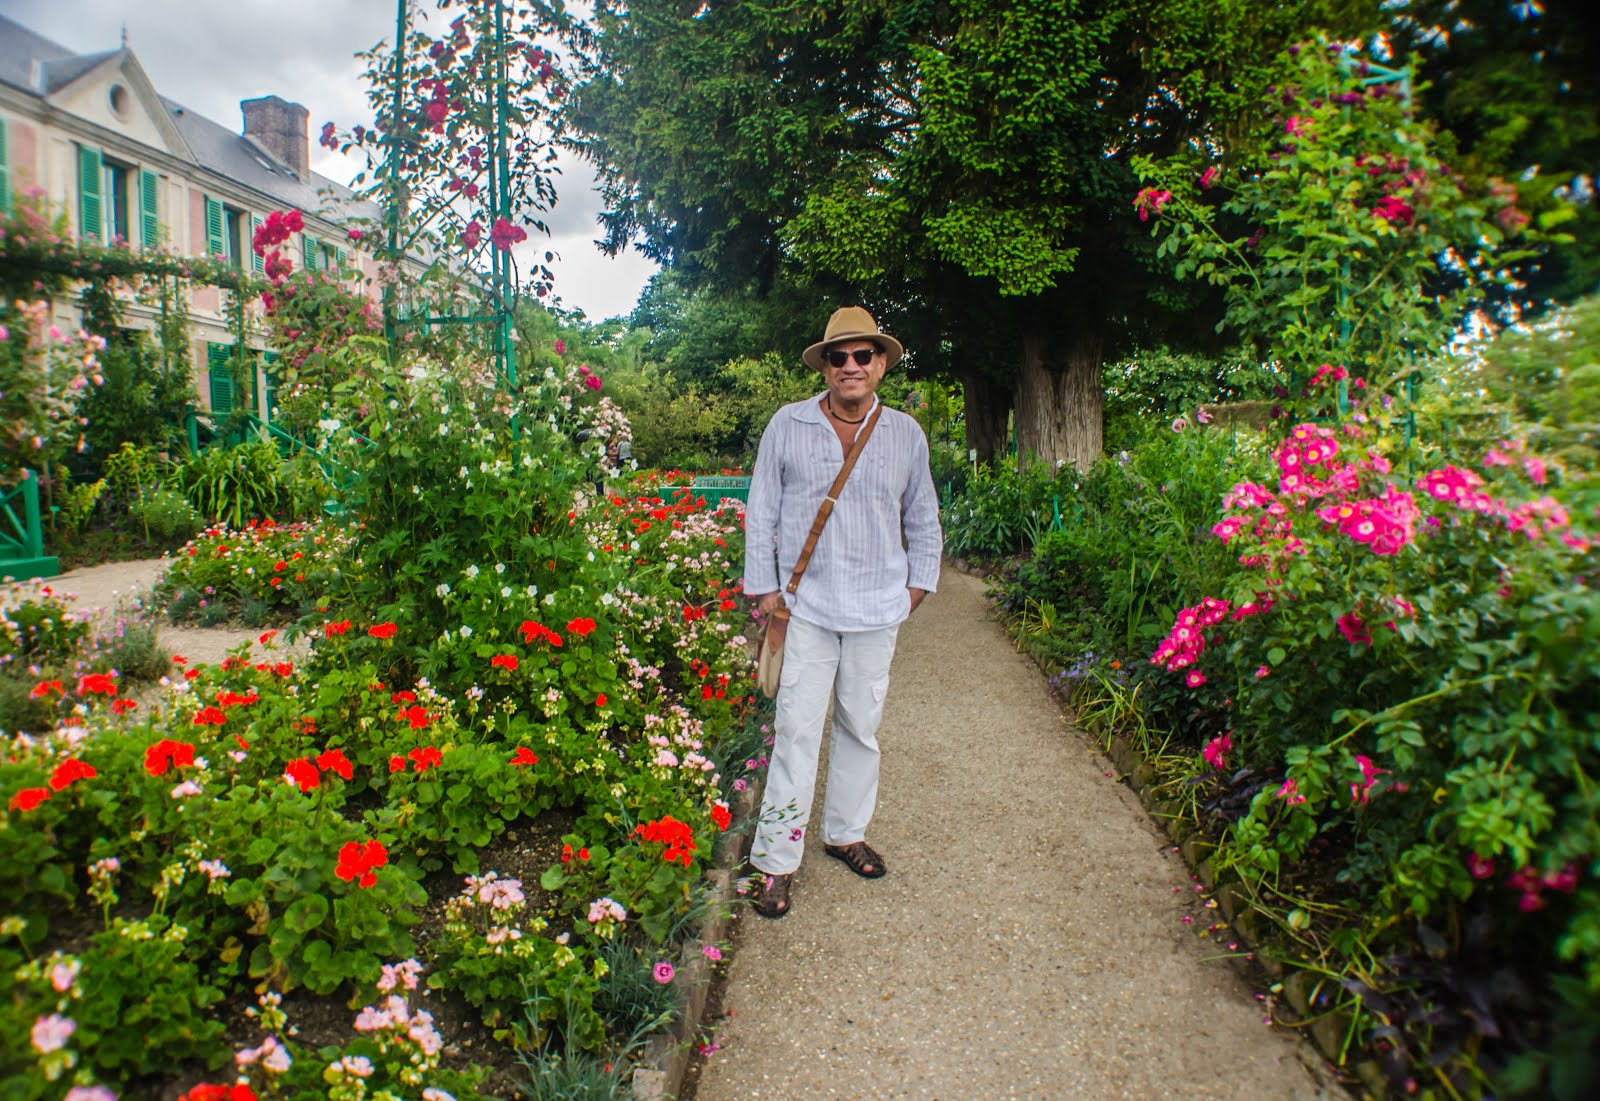 JARDIM DO MONET - GIVERLY - FRANÇA